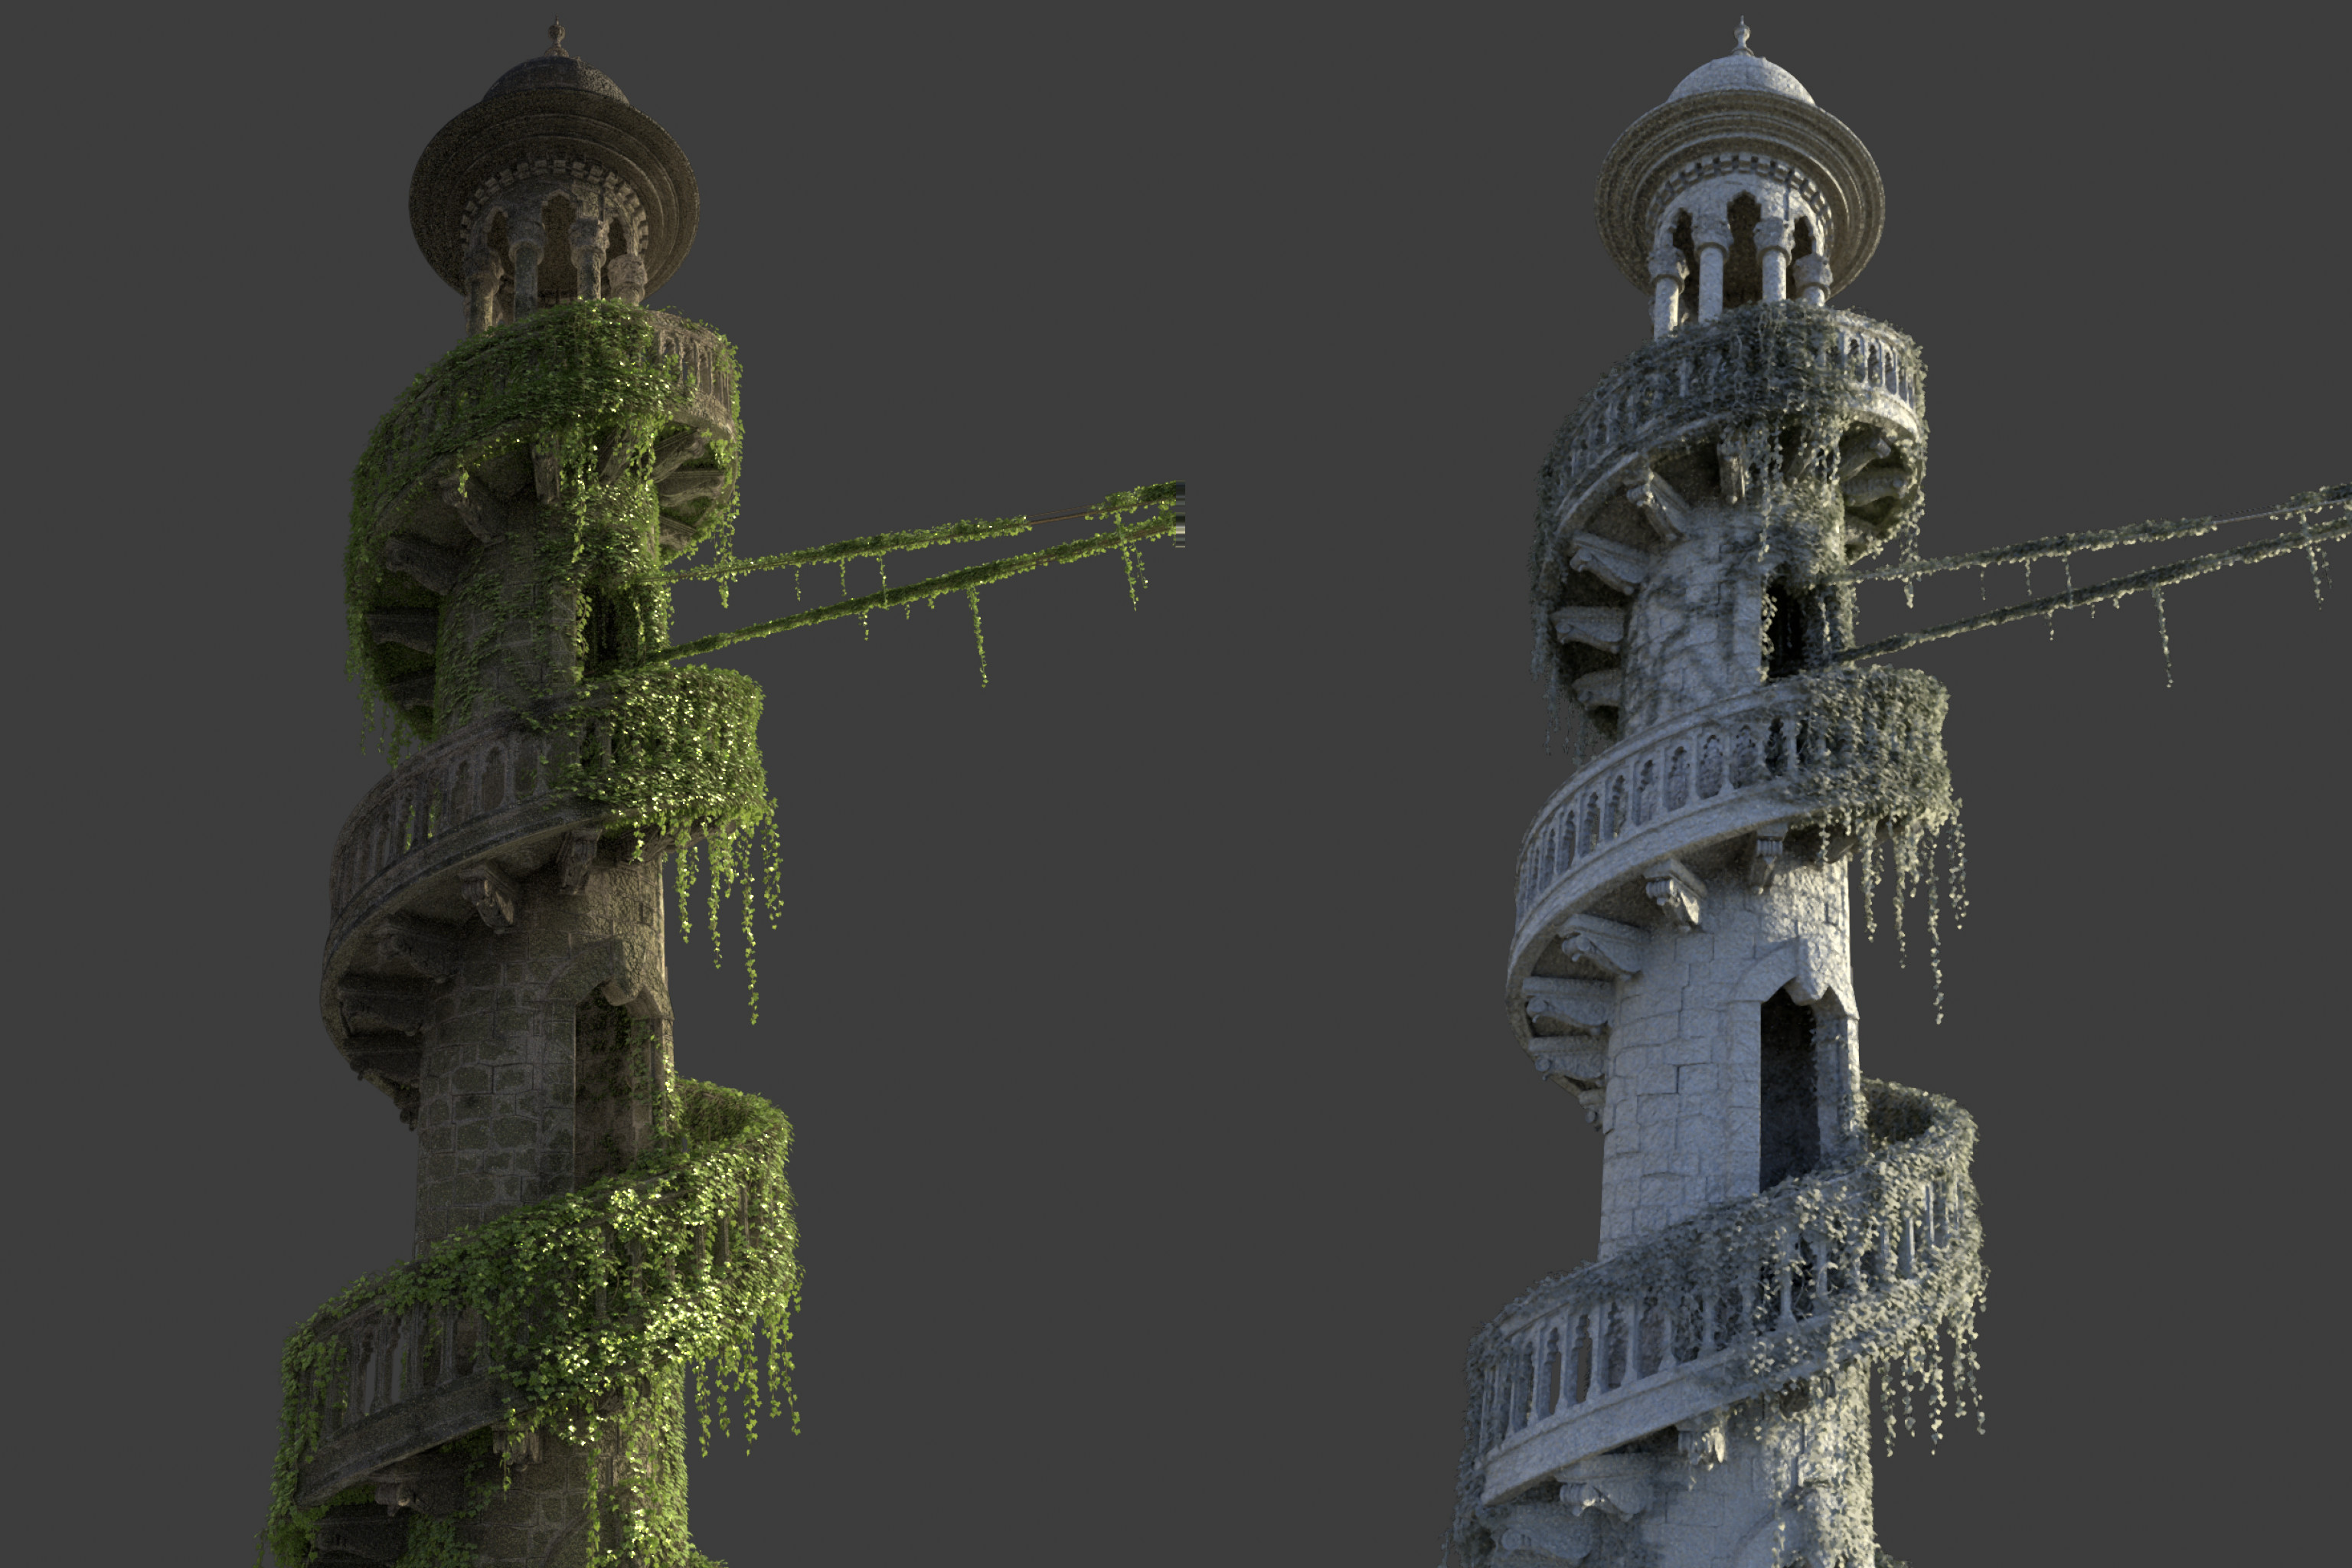 Tower lookdev with extra ivy growth